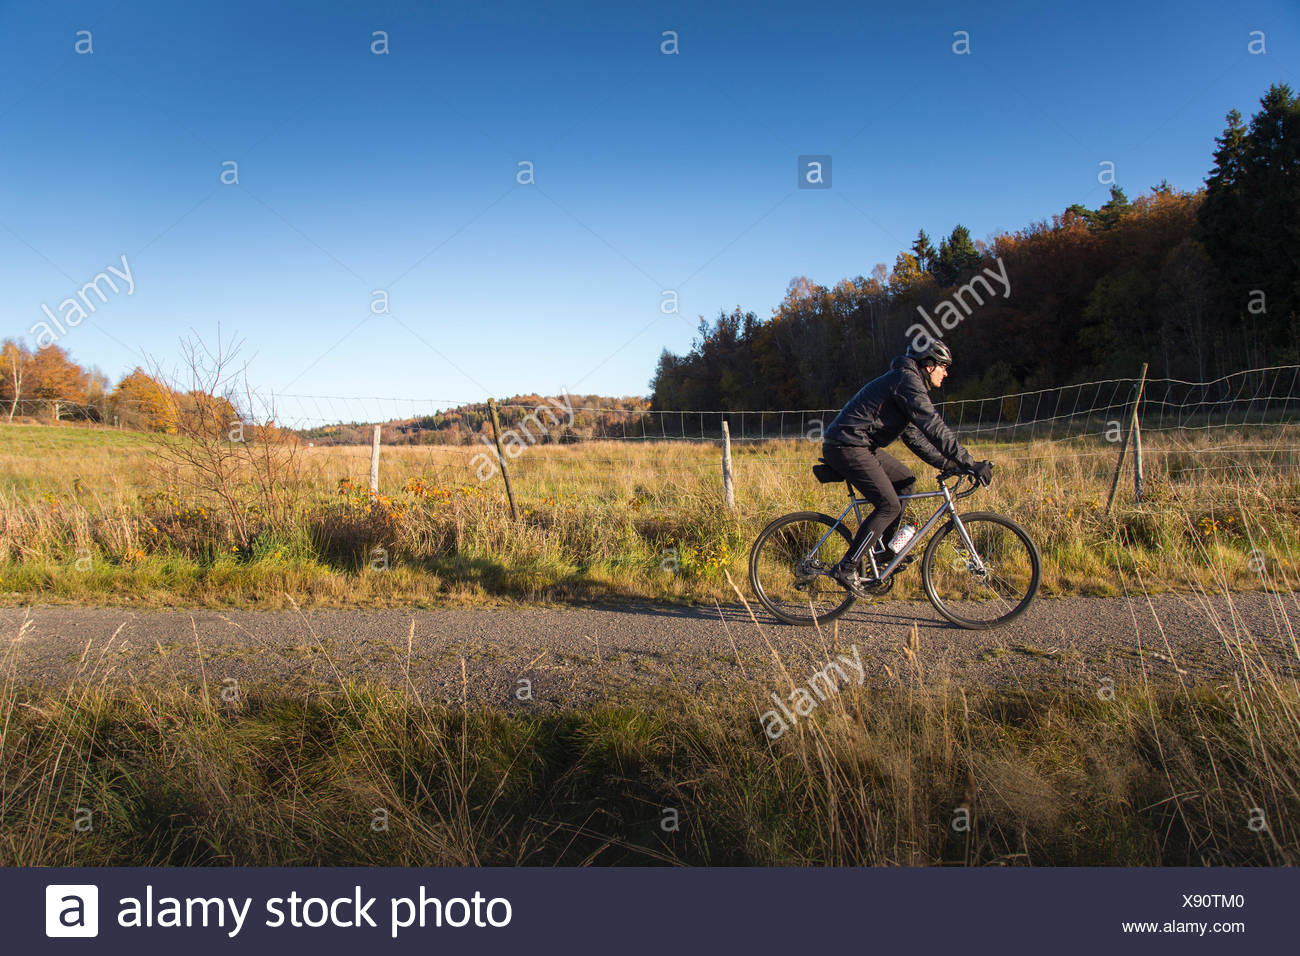 Sweden, Vastergotland, Lerum, Mature man riding bicycle on dirt road among pastures and forests - Stock Image